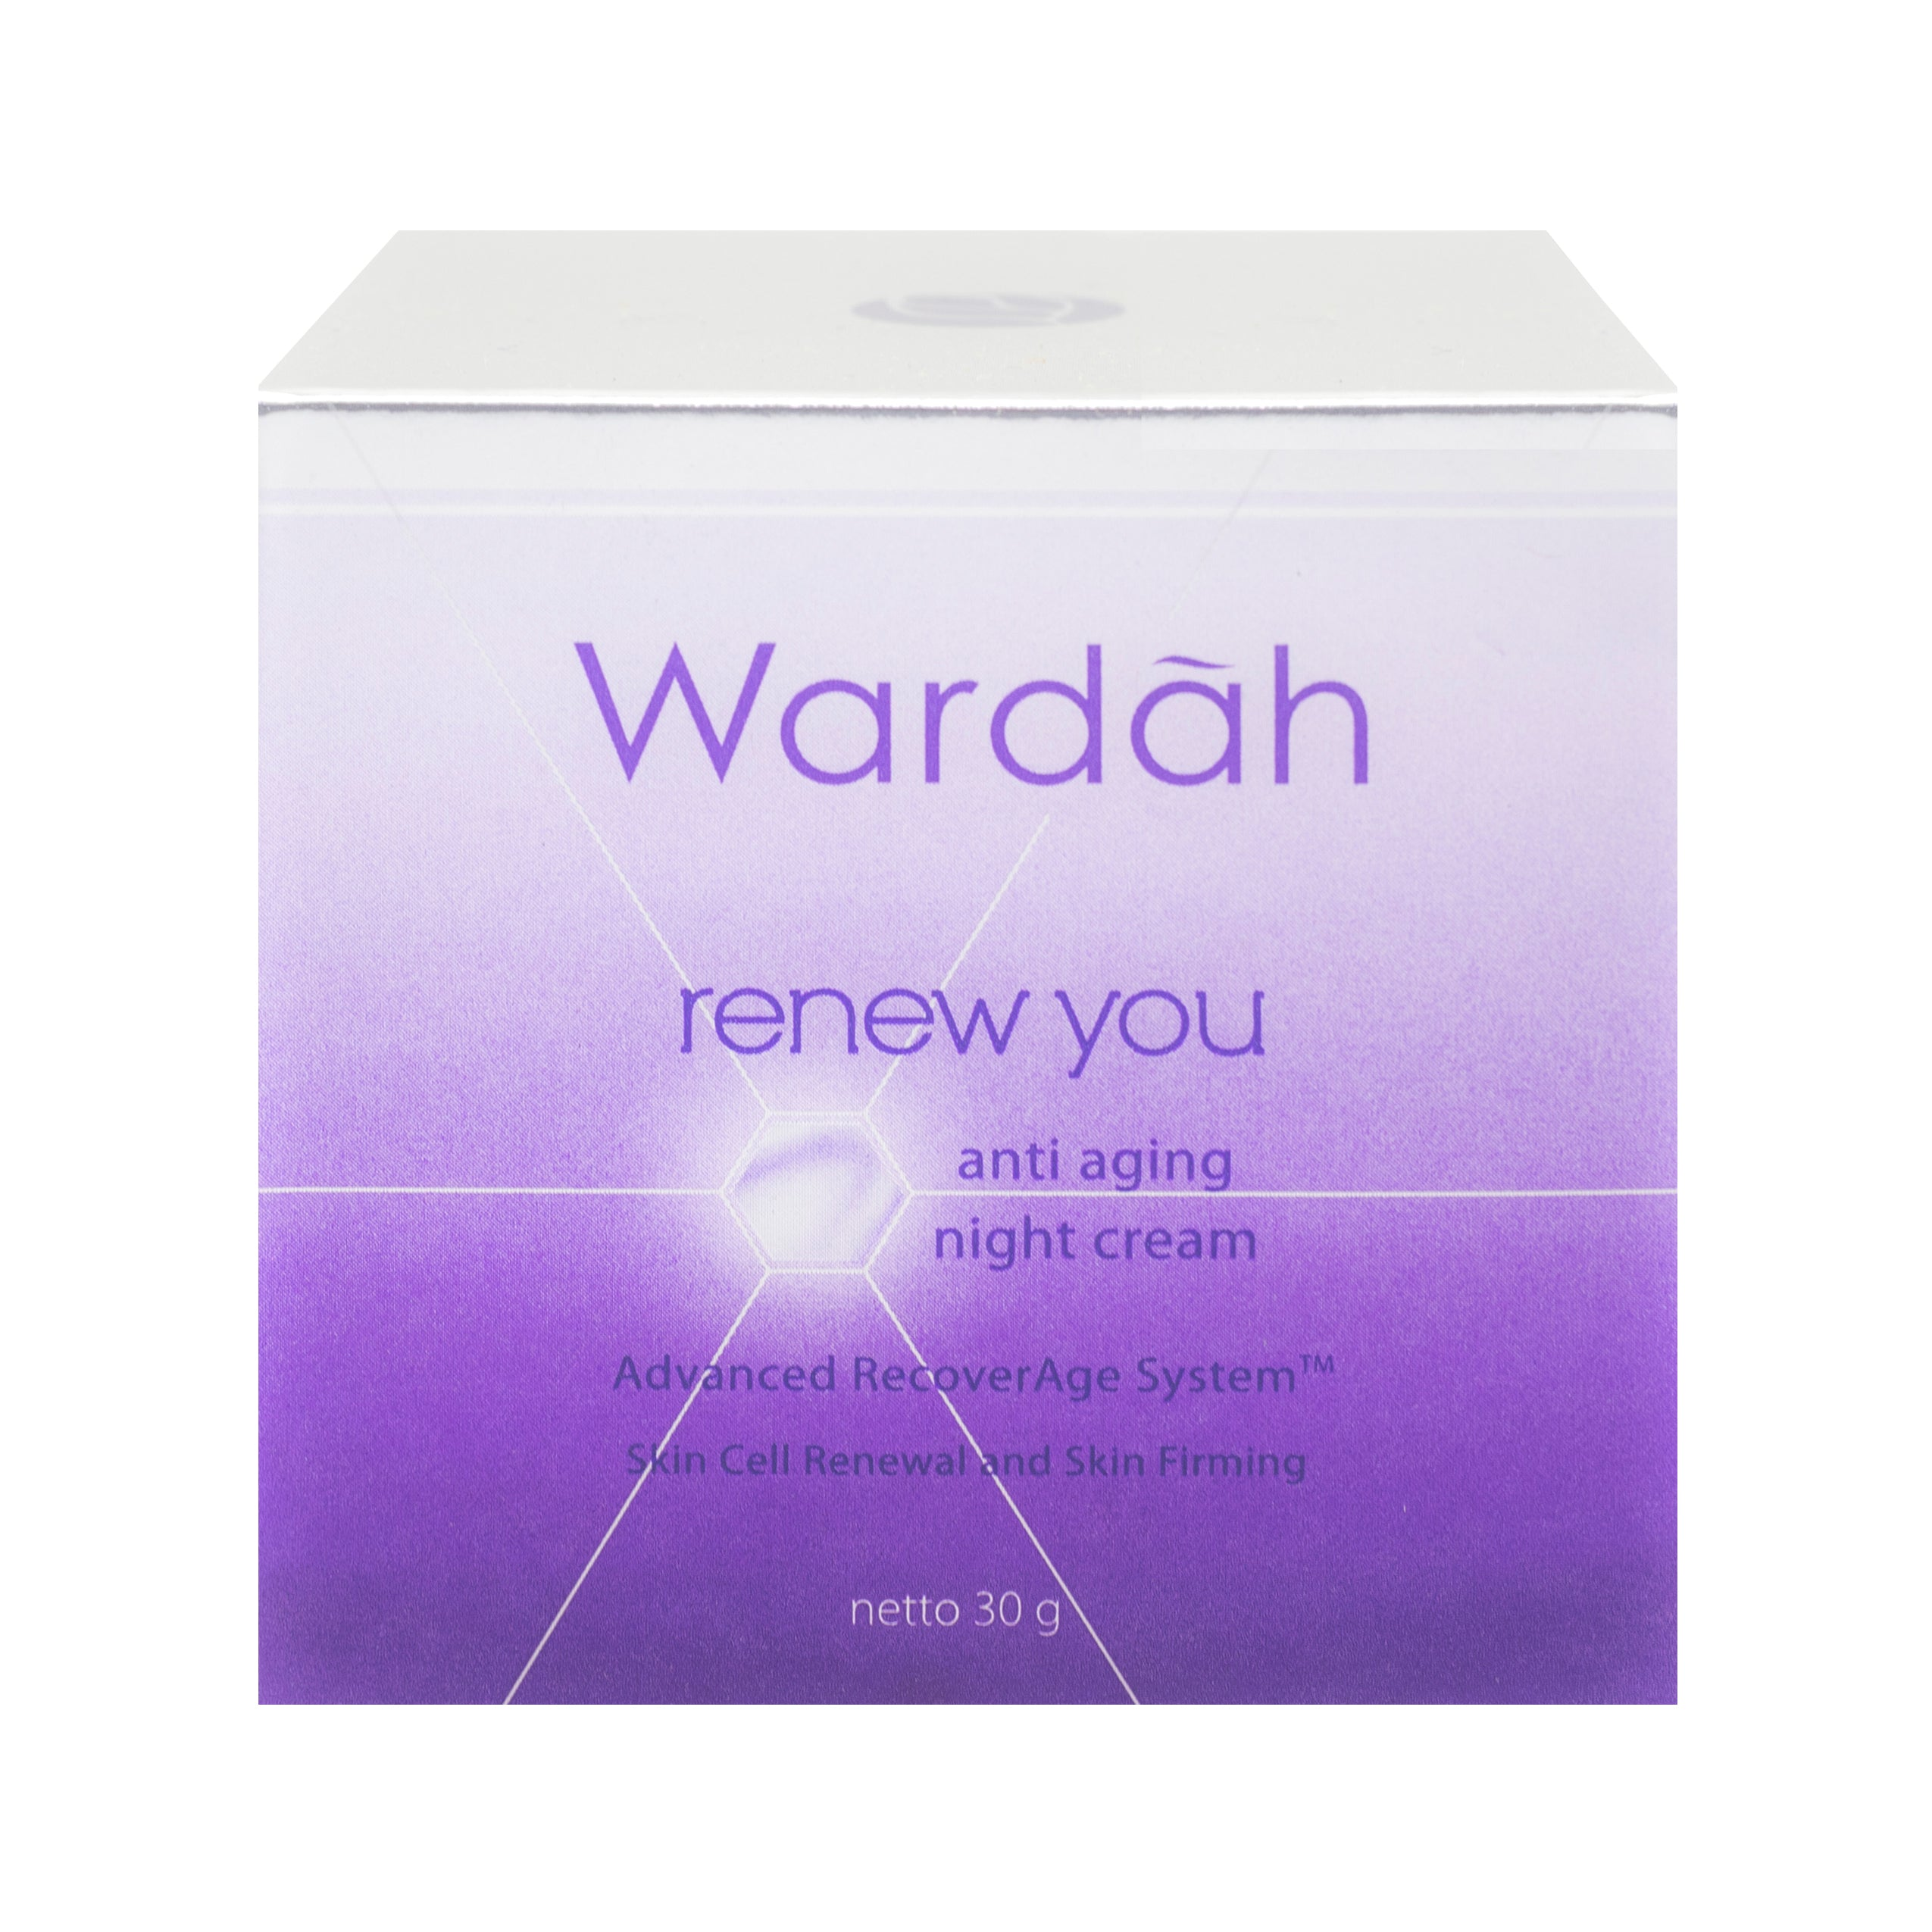 Wardah, Renew You Anti Aging, Night Cream, 30 g